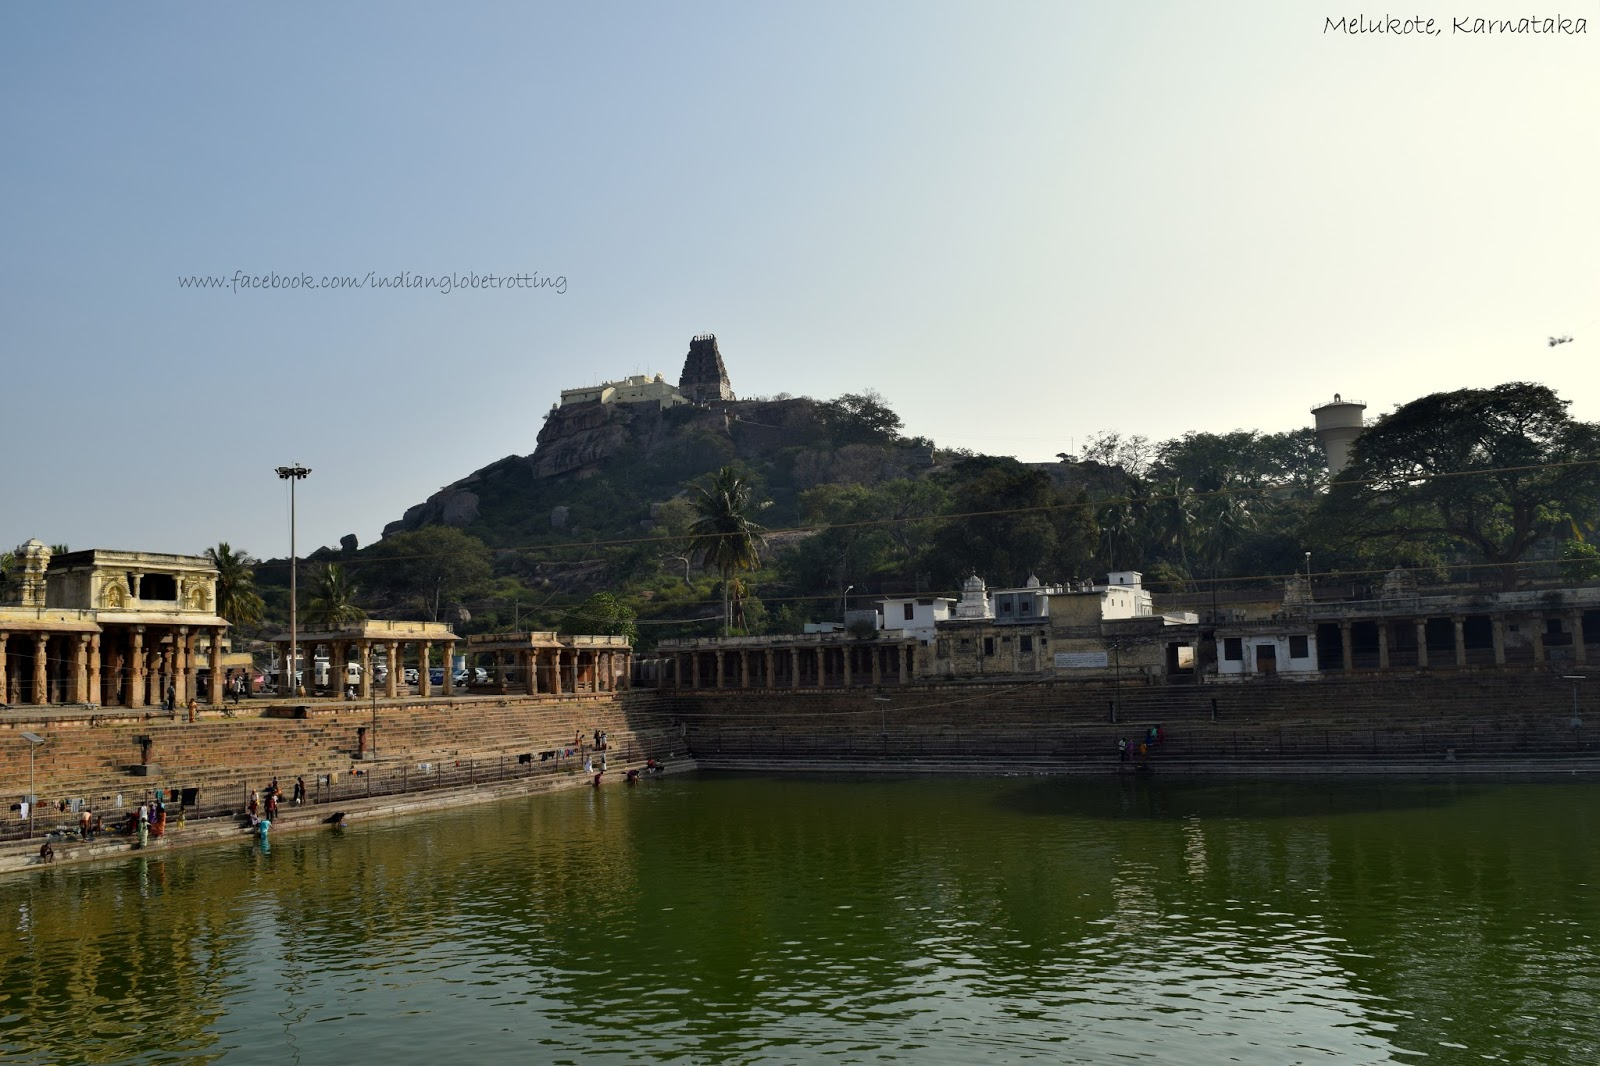 Kalyani and Yoga Narasimha Temple on top of hill in melukote